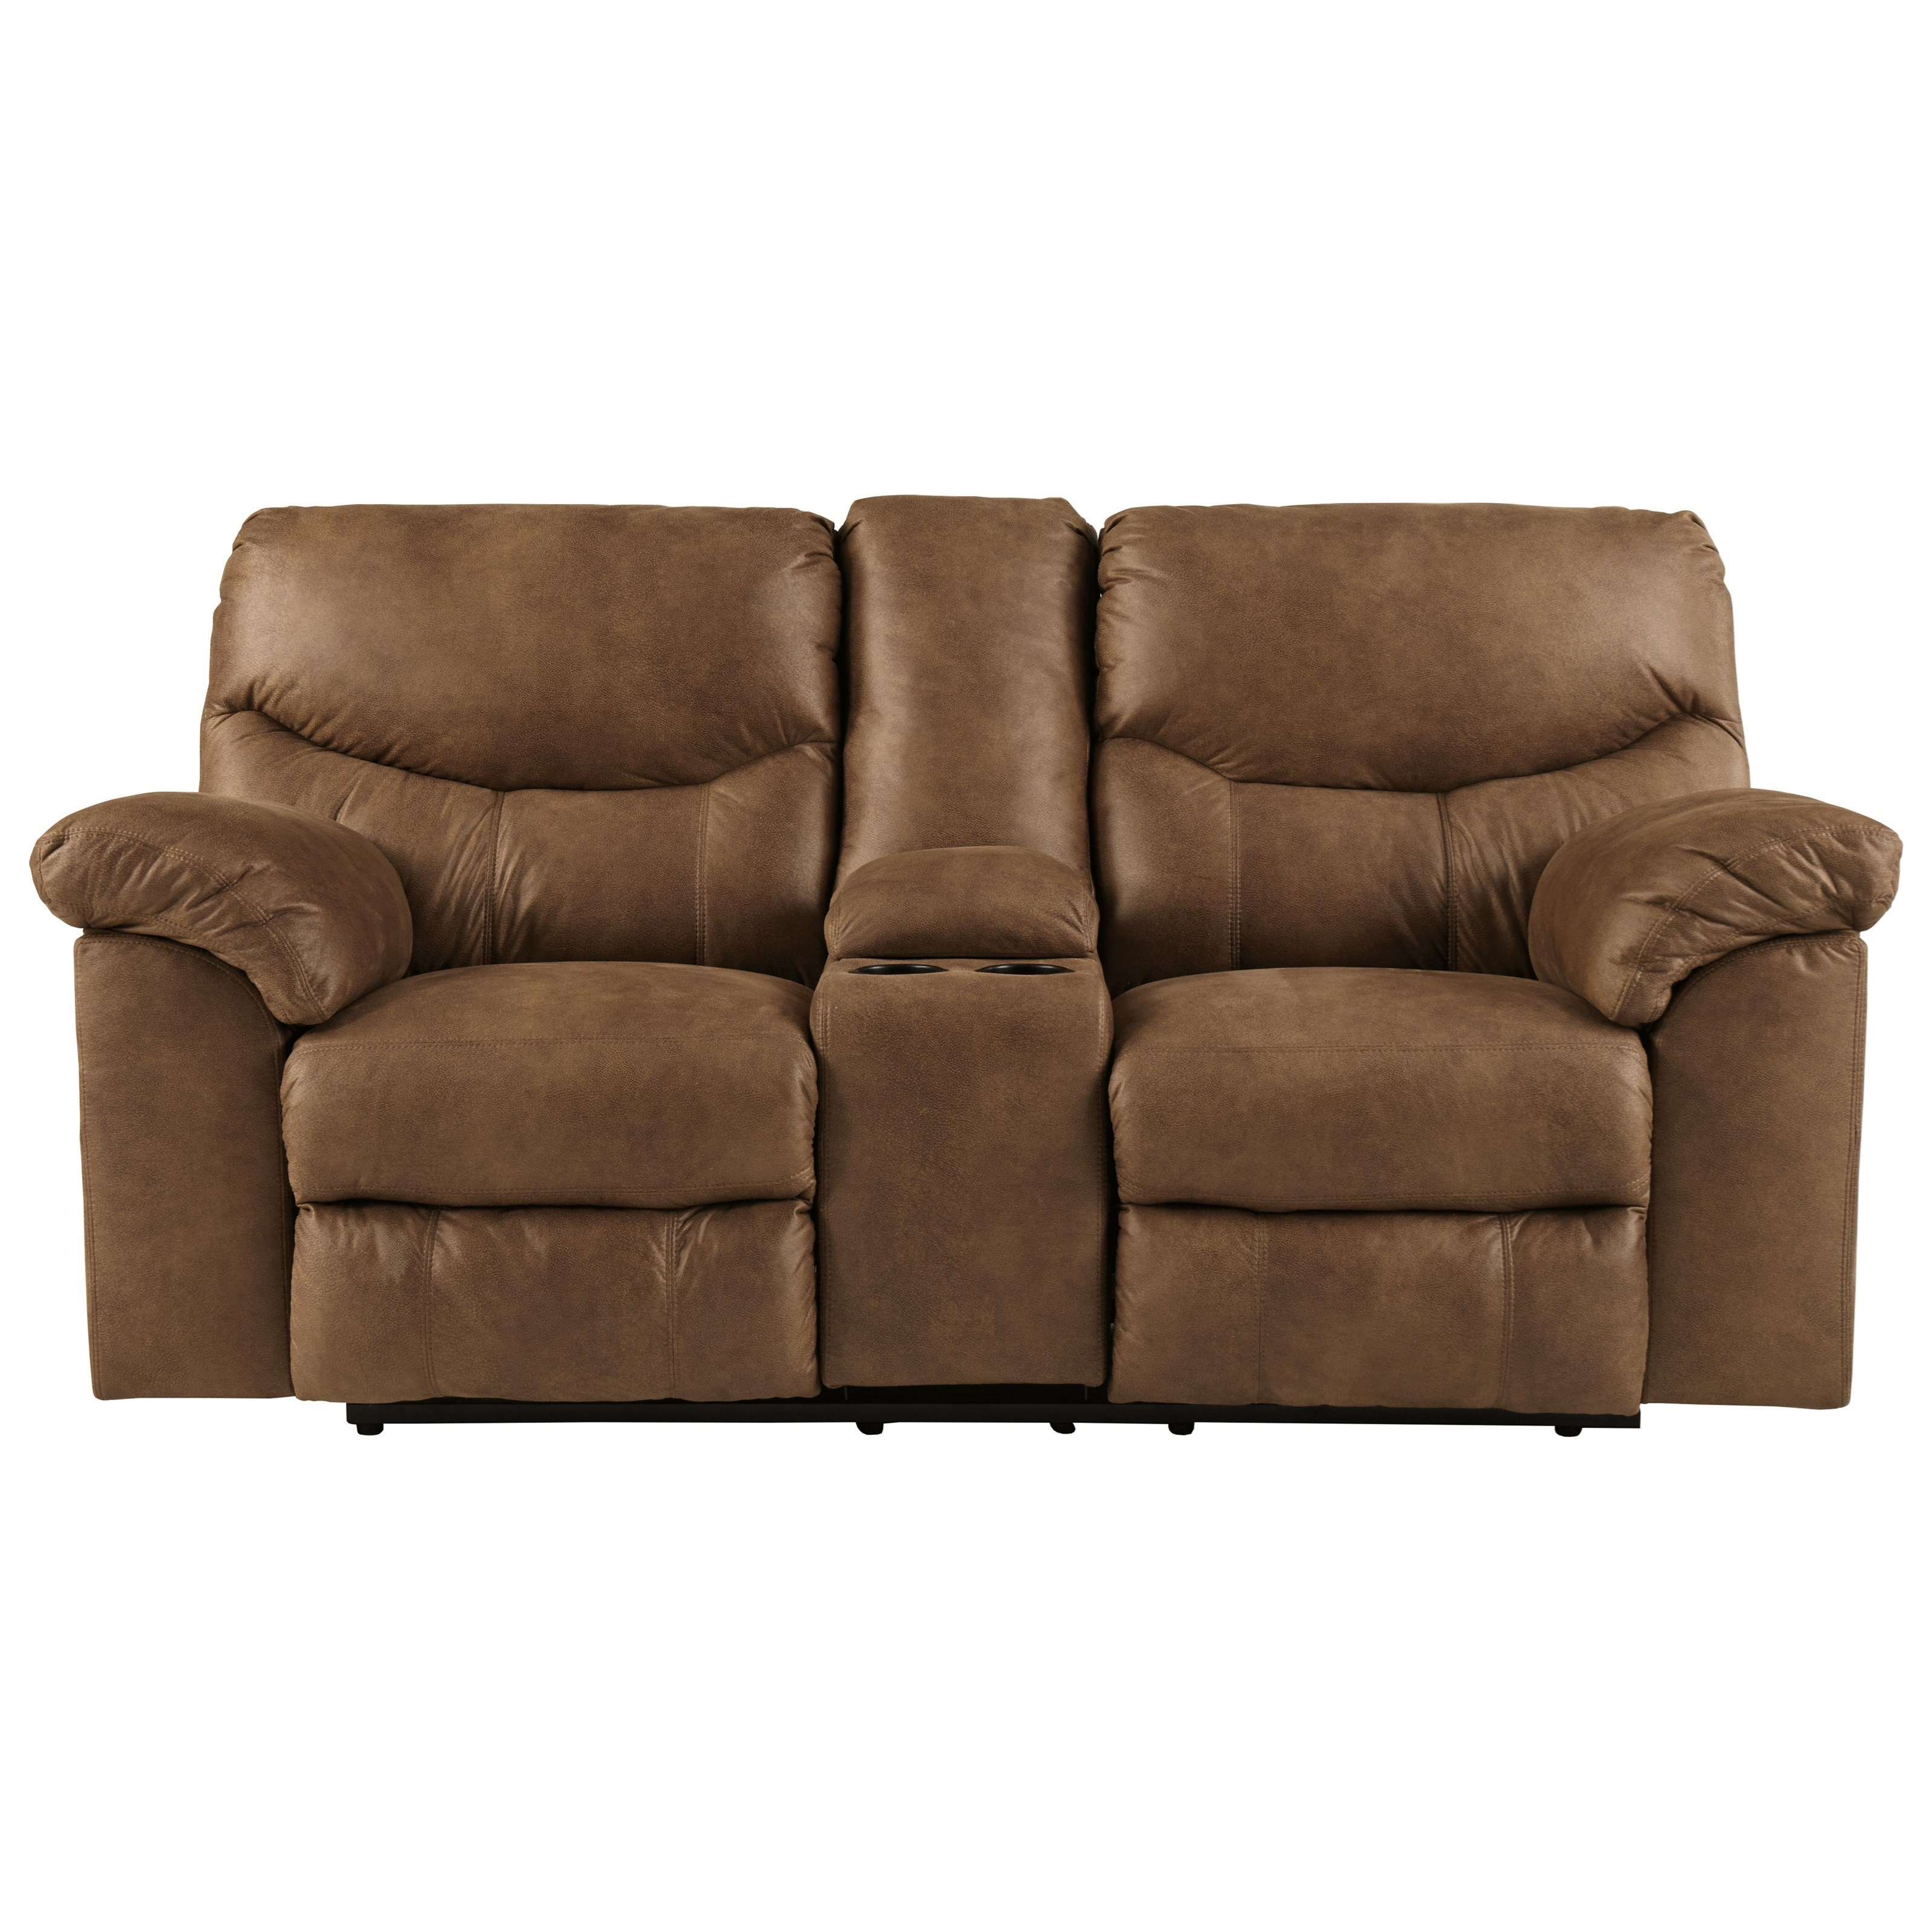 Signature Design by Ashley Boxberg Double Reclining Loveseat with Console - Item Number: 3380294